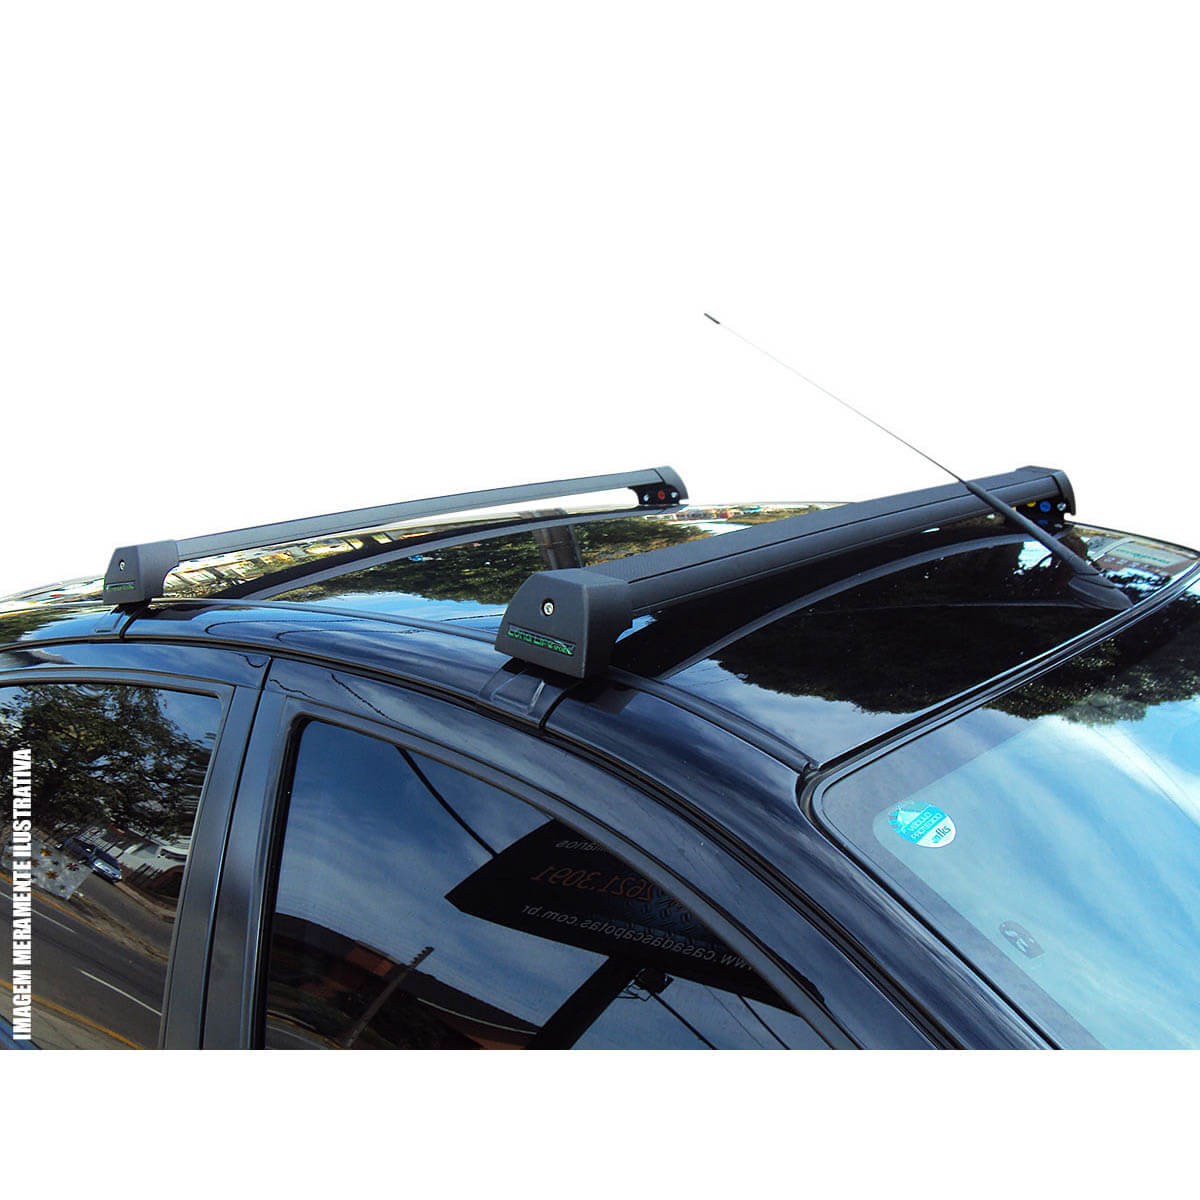 Rack de teto Grand Siena 2012 a 2021 Long Life Sports preto